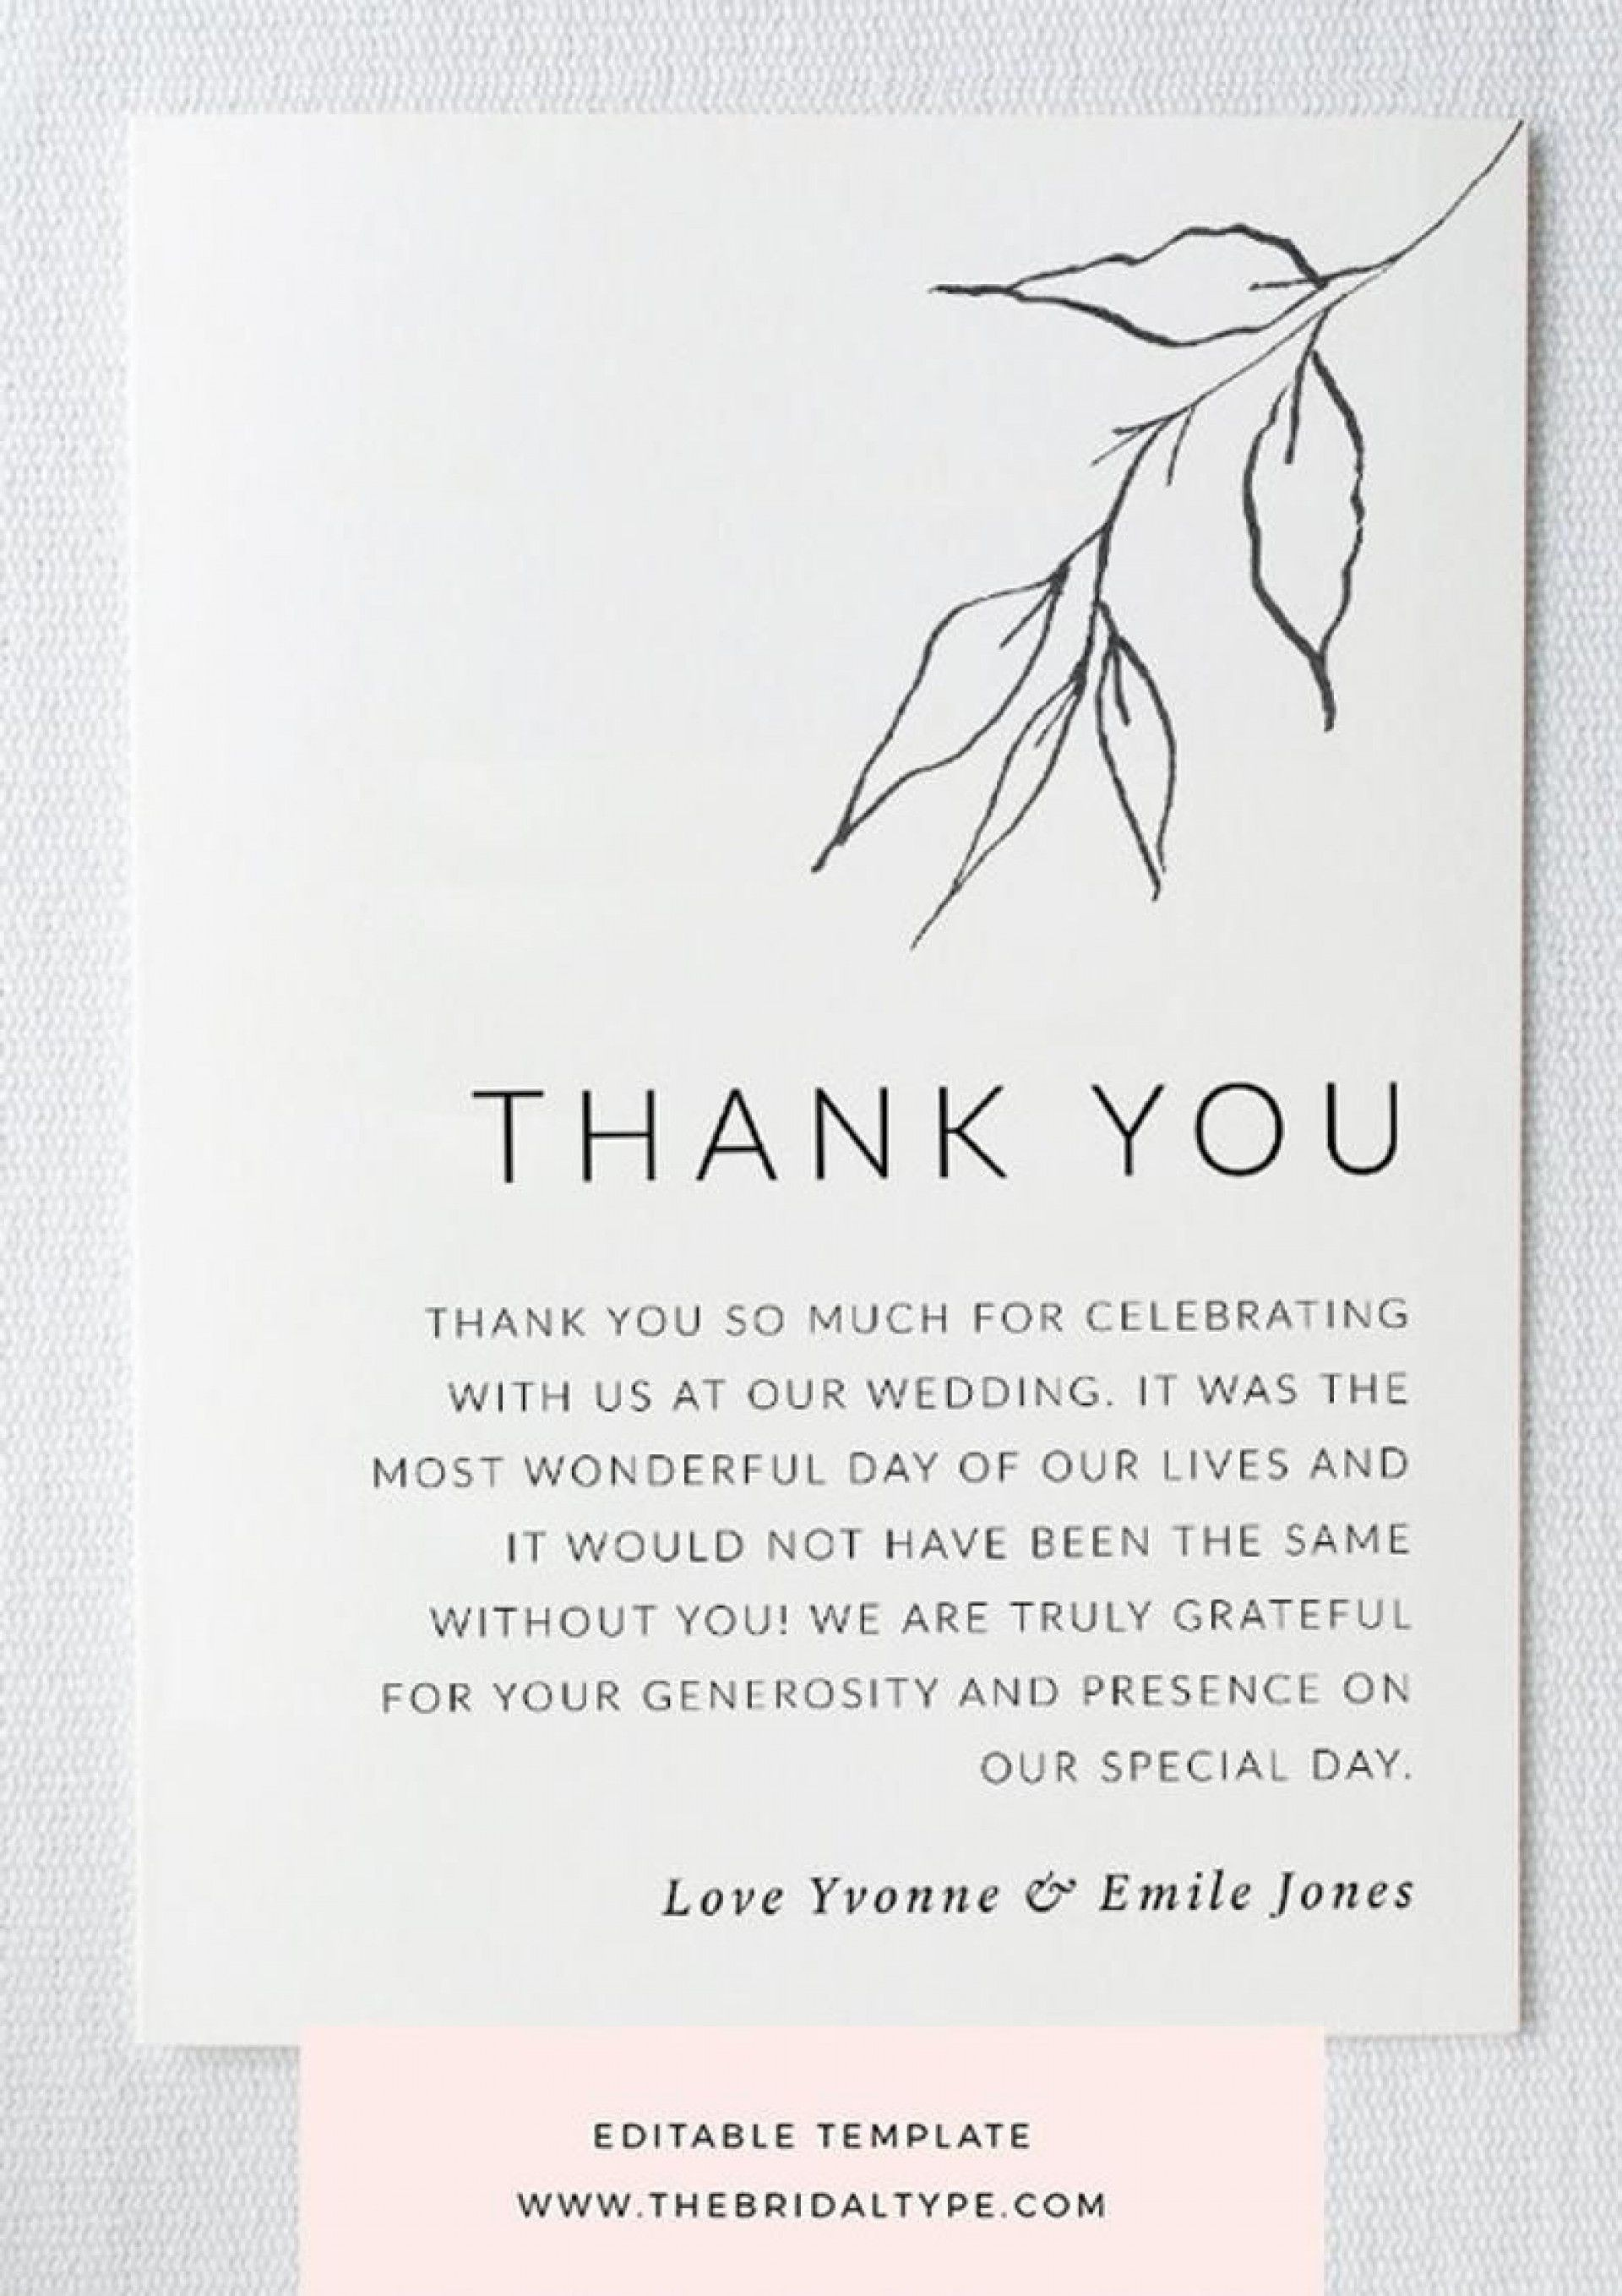 000 Amazing Free Thank You Card Template Sample  Google Doc For Funeral Microsoft Word1920